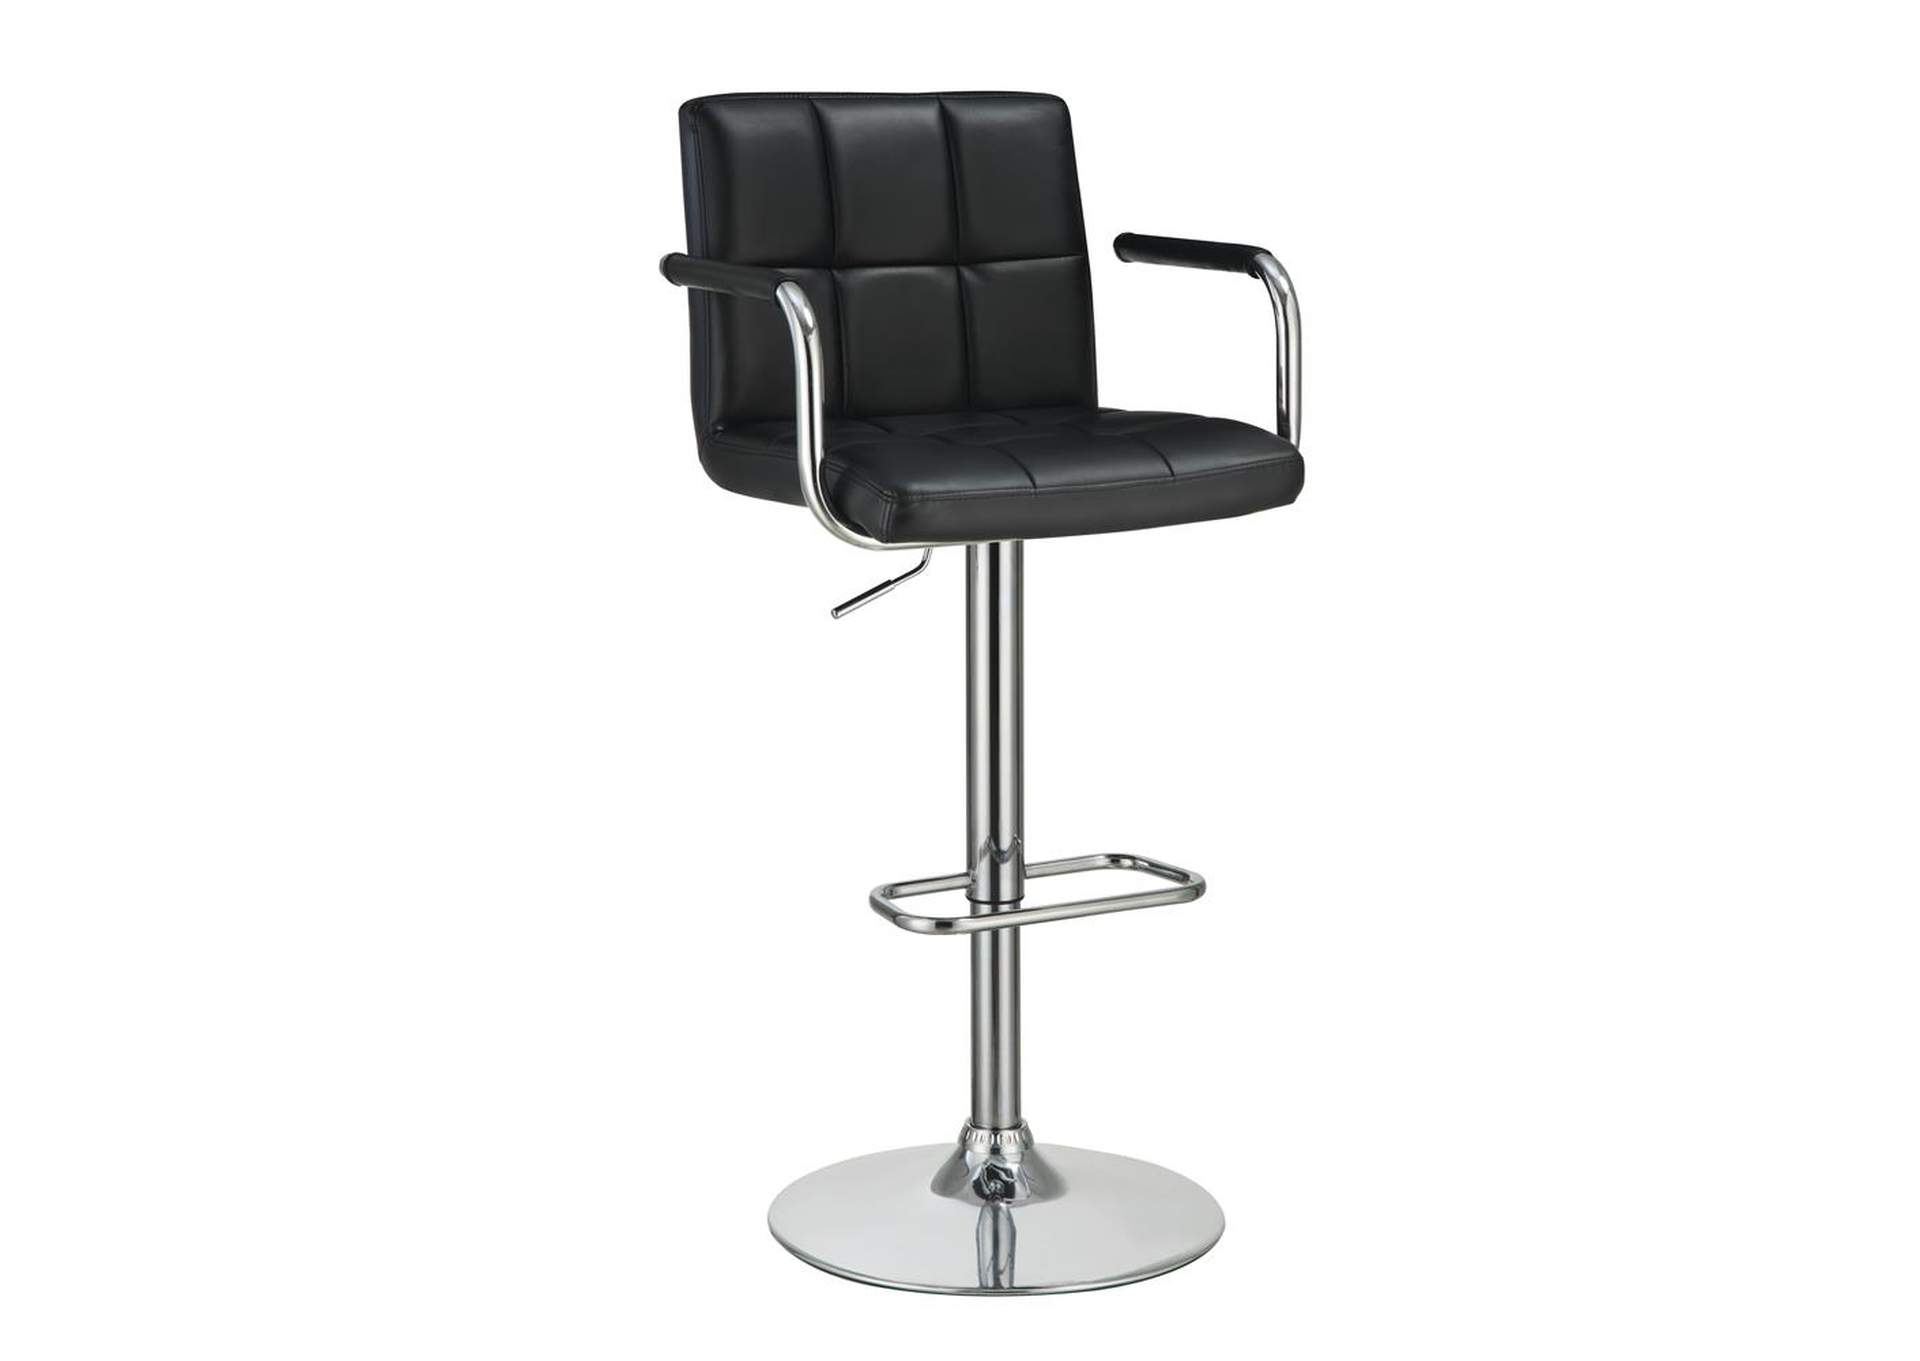 Mine Shaft Contemporary Black and Chrome Adjustable Bar Stool  W/ Arms,Coaster Furniture